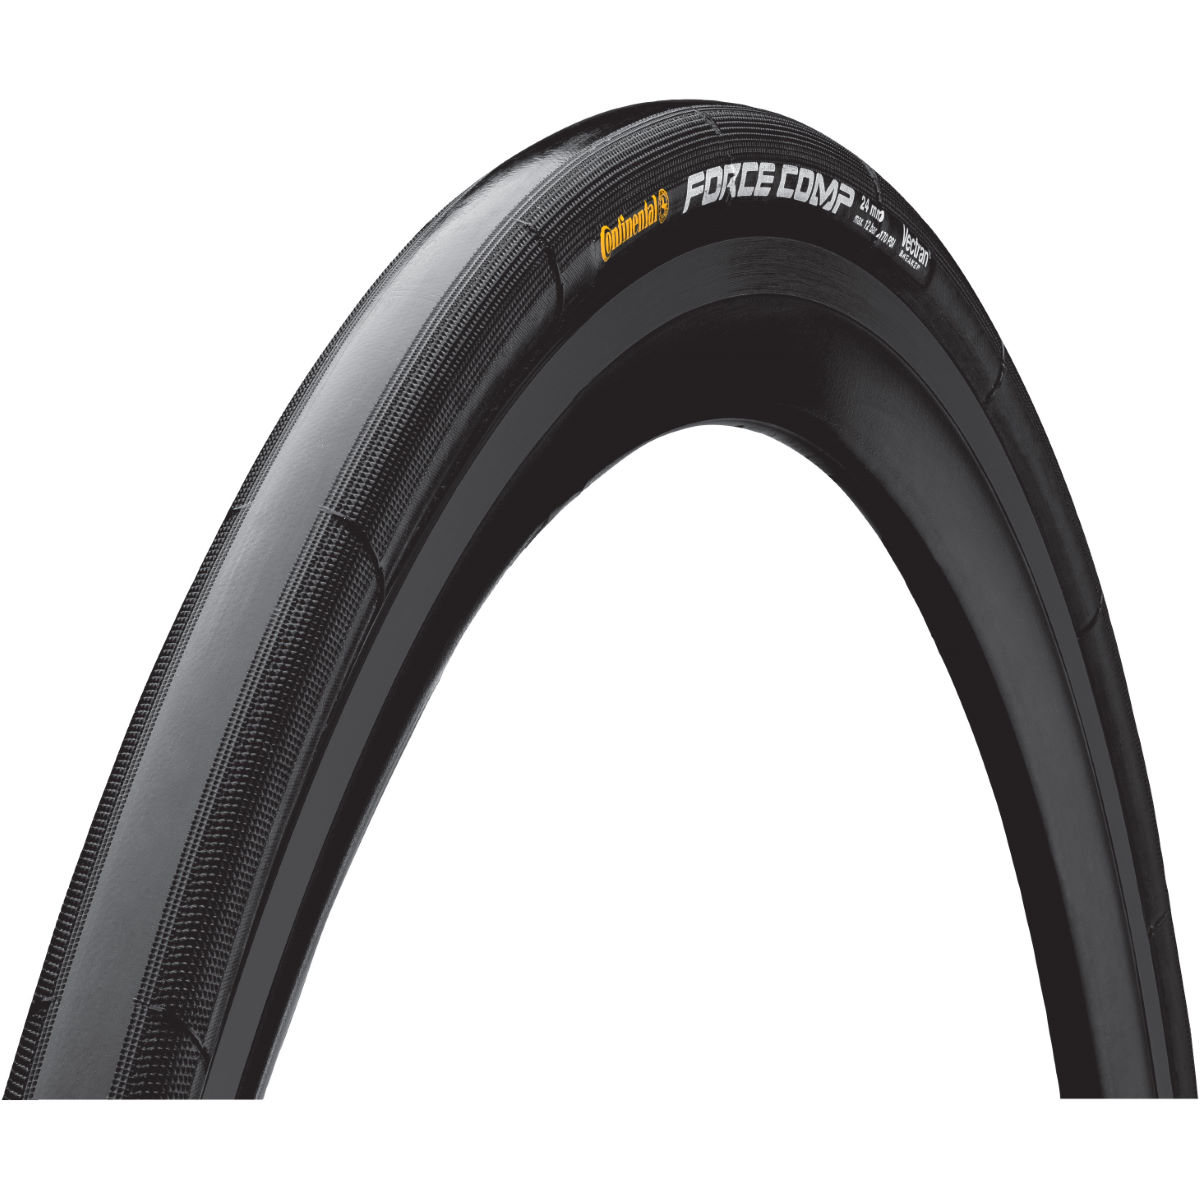 Continental Continental GP Force Comp Tubular Tyre   Tyres